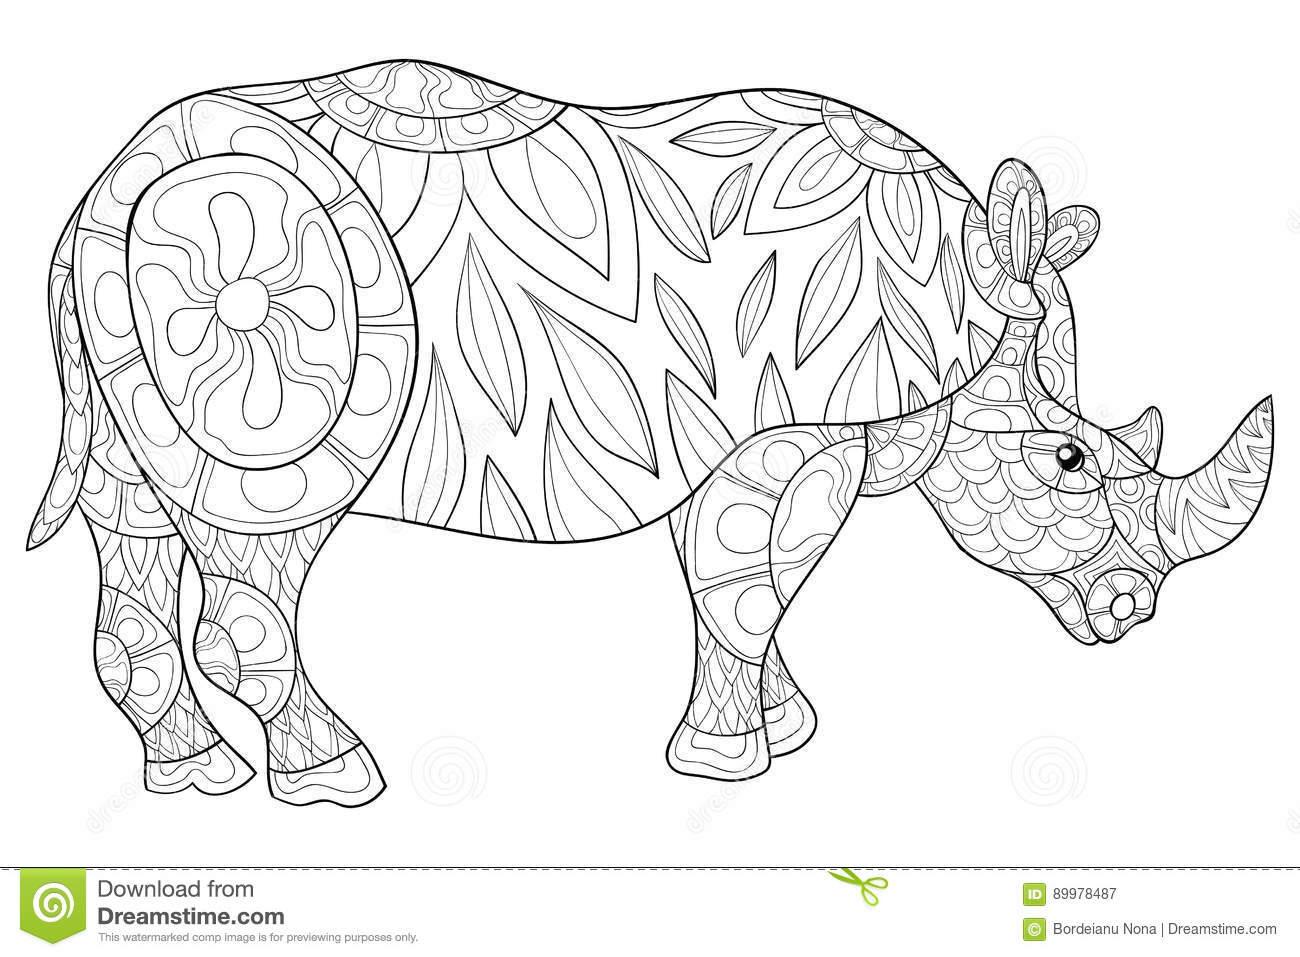 Printable coloring sheet with funny rhino | 957x1300